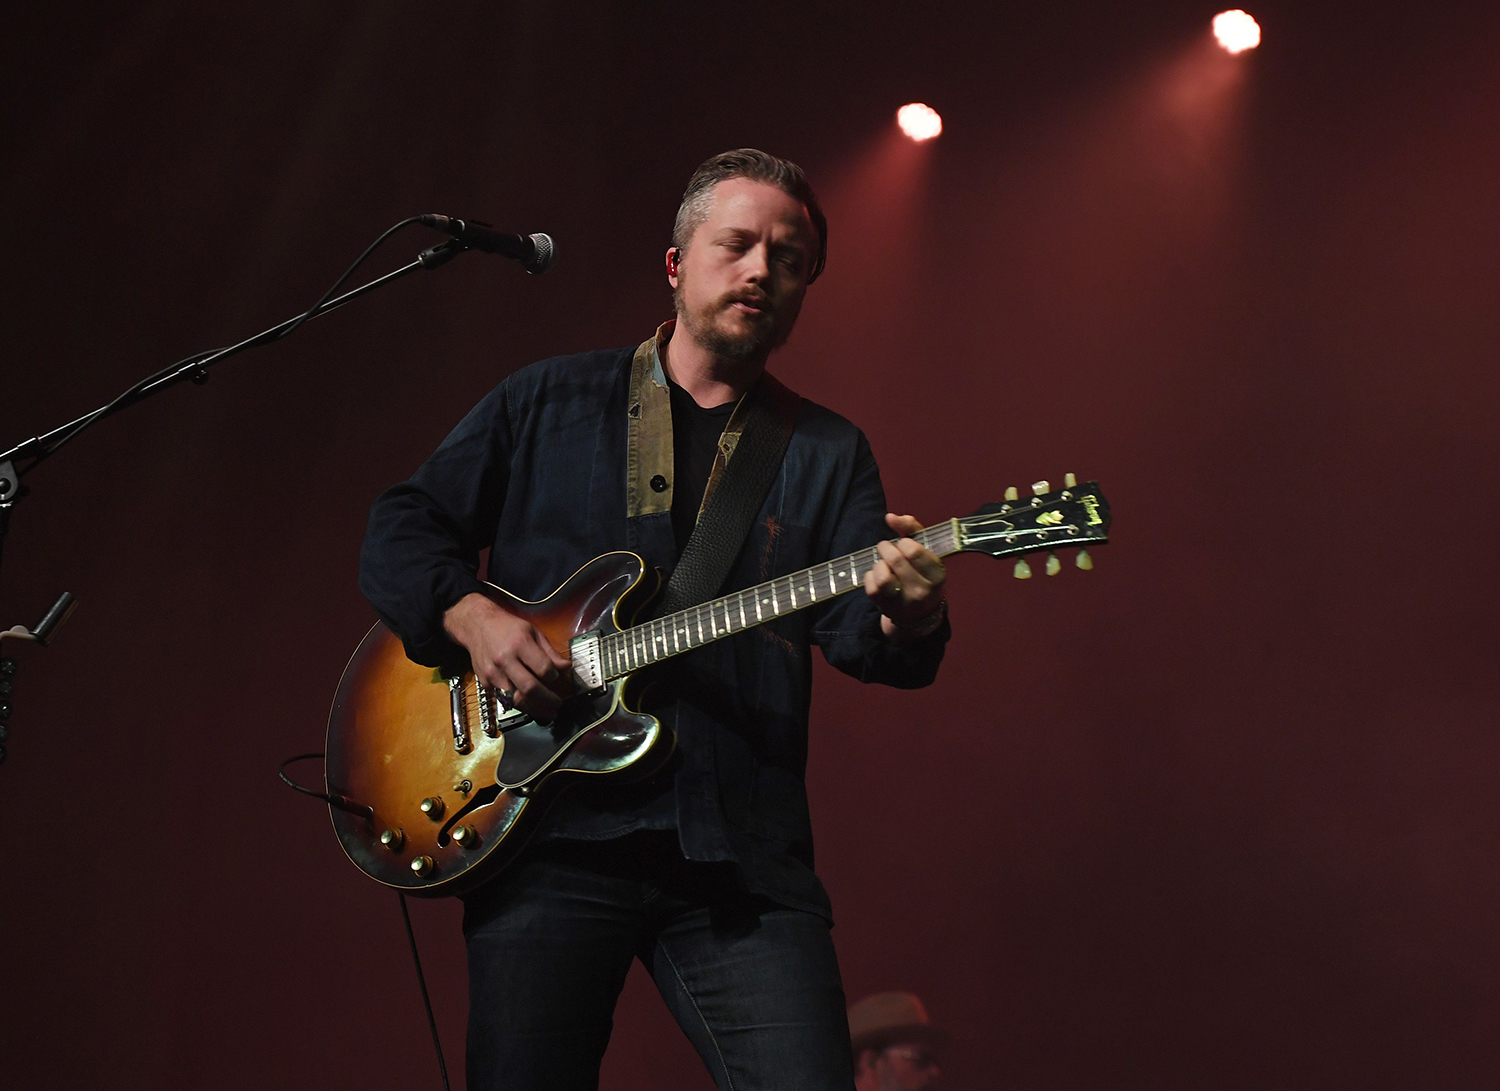 Jason Isbell Previews New Album 'Reunions' With Urgent Anthem 'Be Afraid'